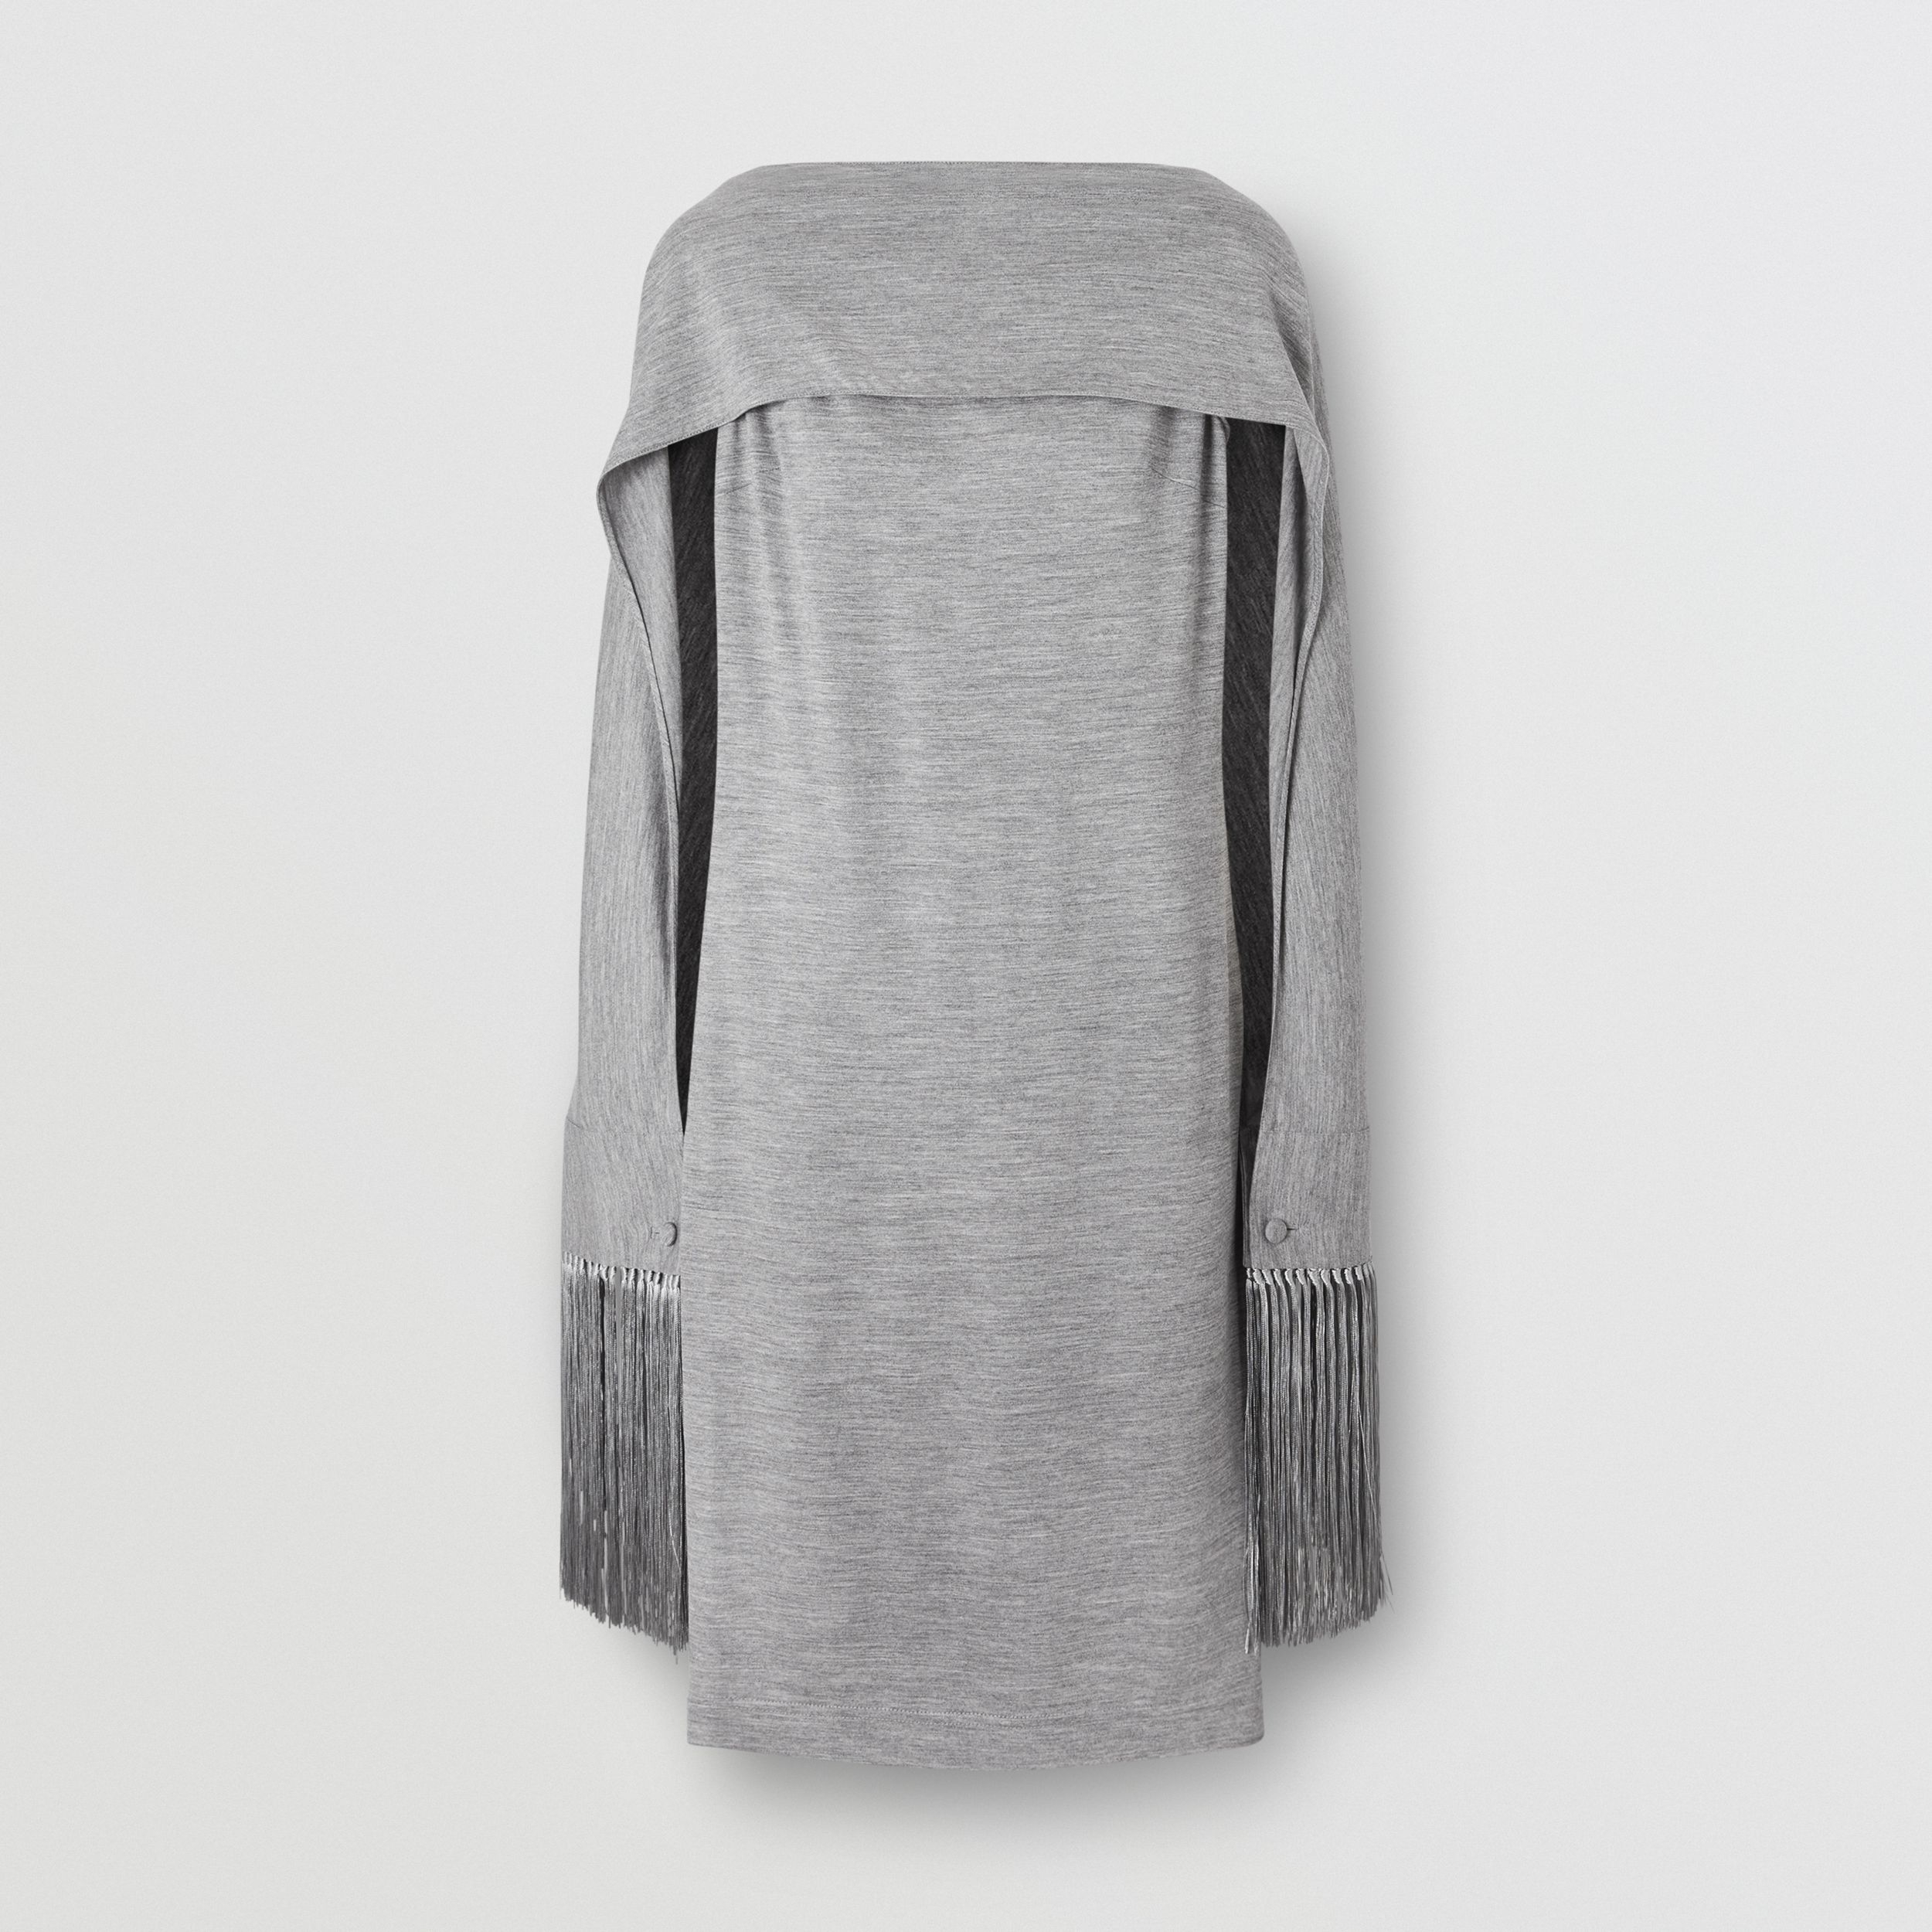 Merino Wool Sleeveless Dress with Fringed Capelet in Cloud Grey - Women | Burberry Hong Kong S.A.R. - 1